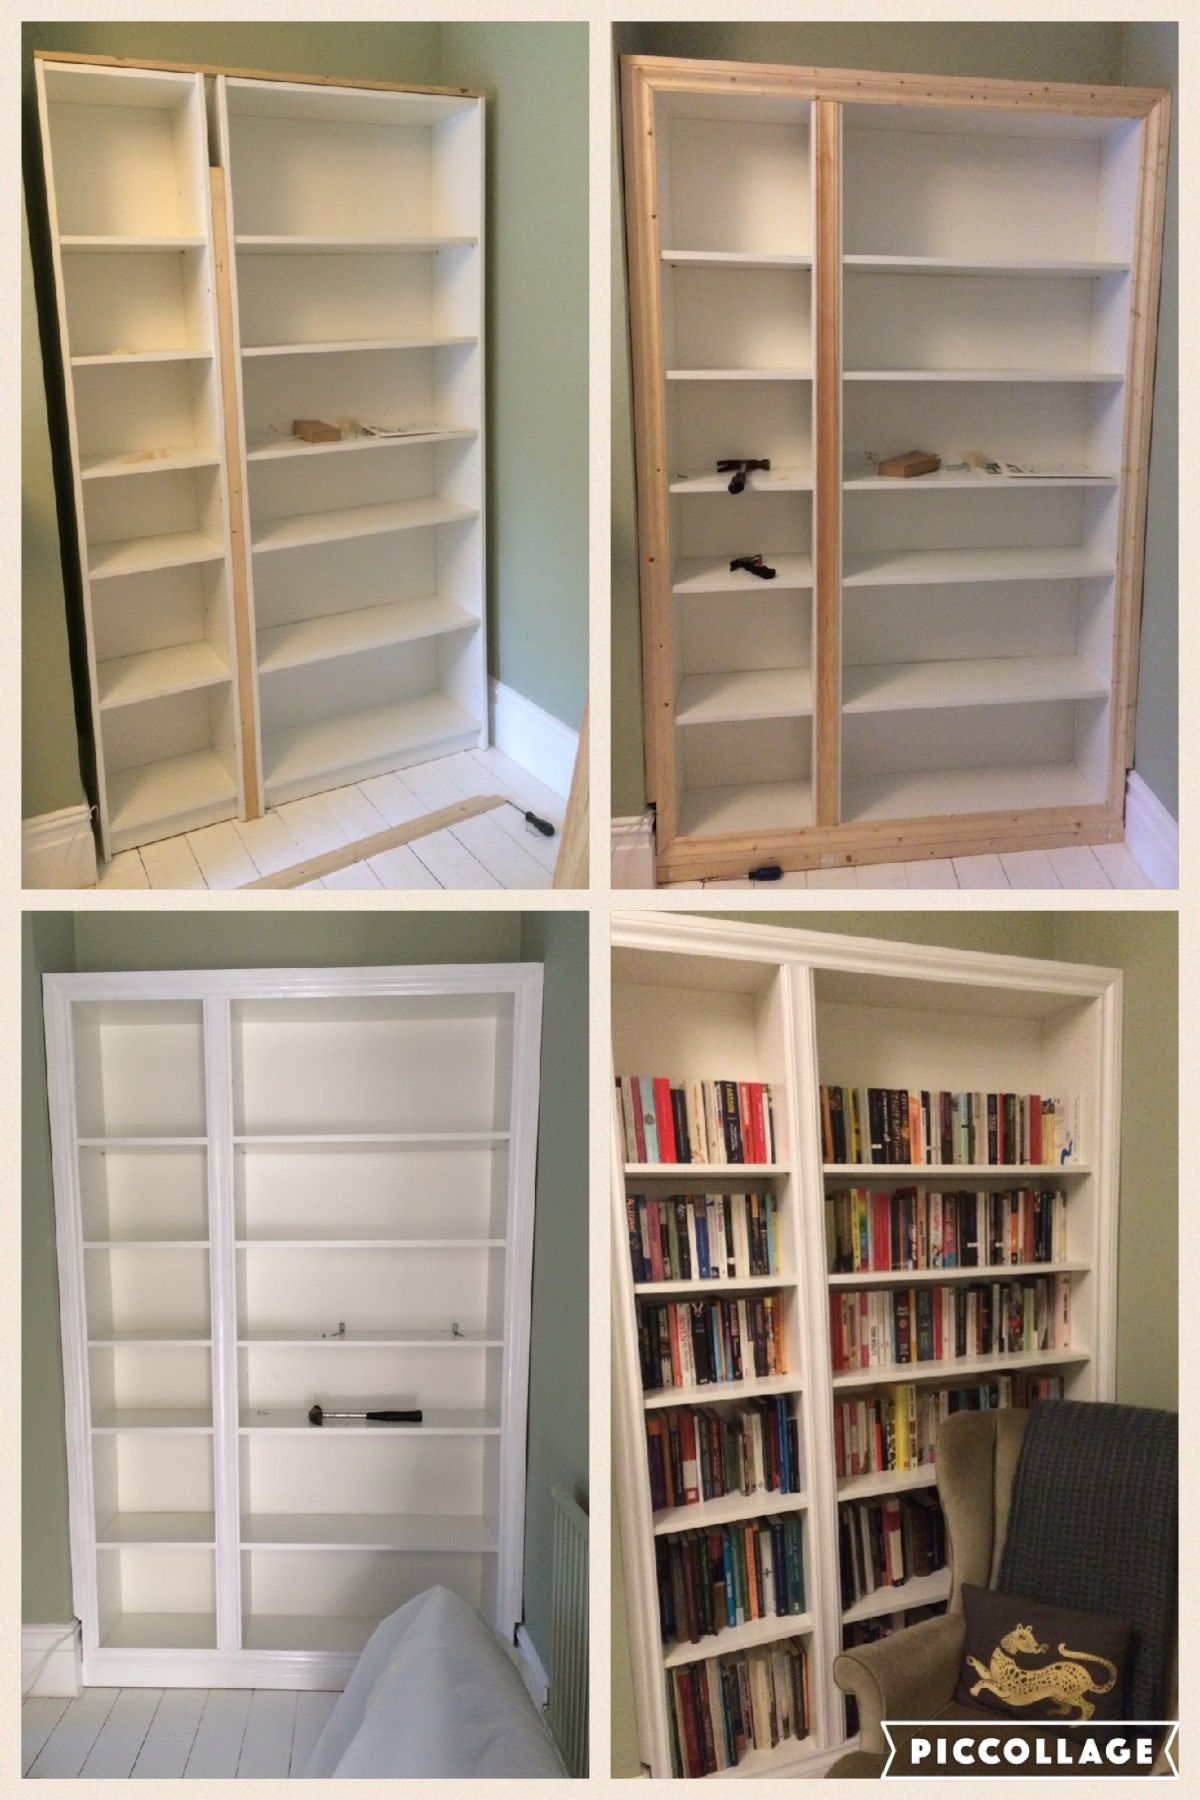 ikea hack billy bookcase modified to look like built in alcove shelving home ideas in 2018. Black Bedroom Furniture Sets. Home Design Ideas